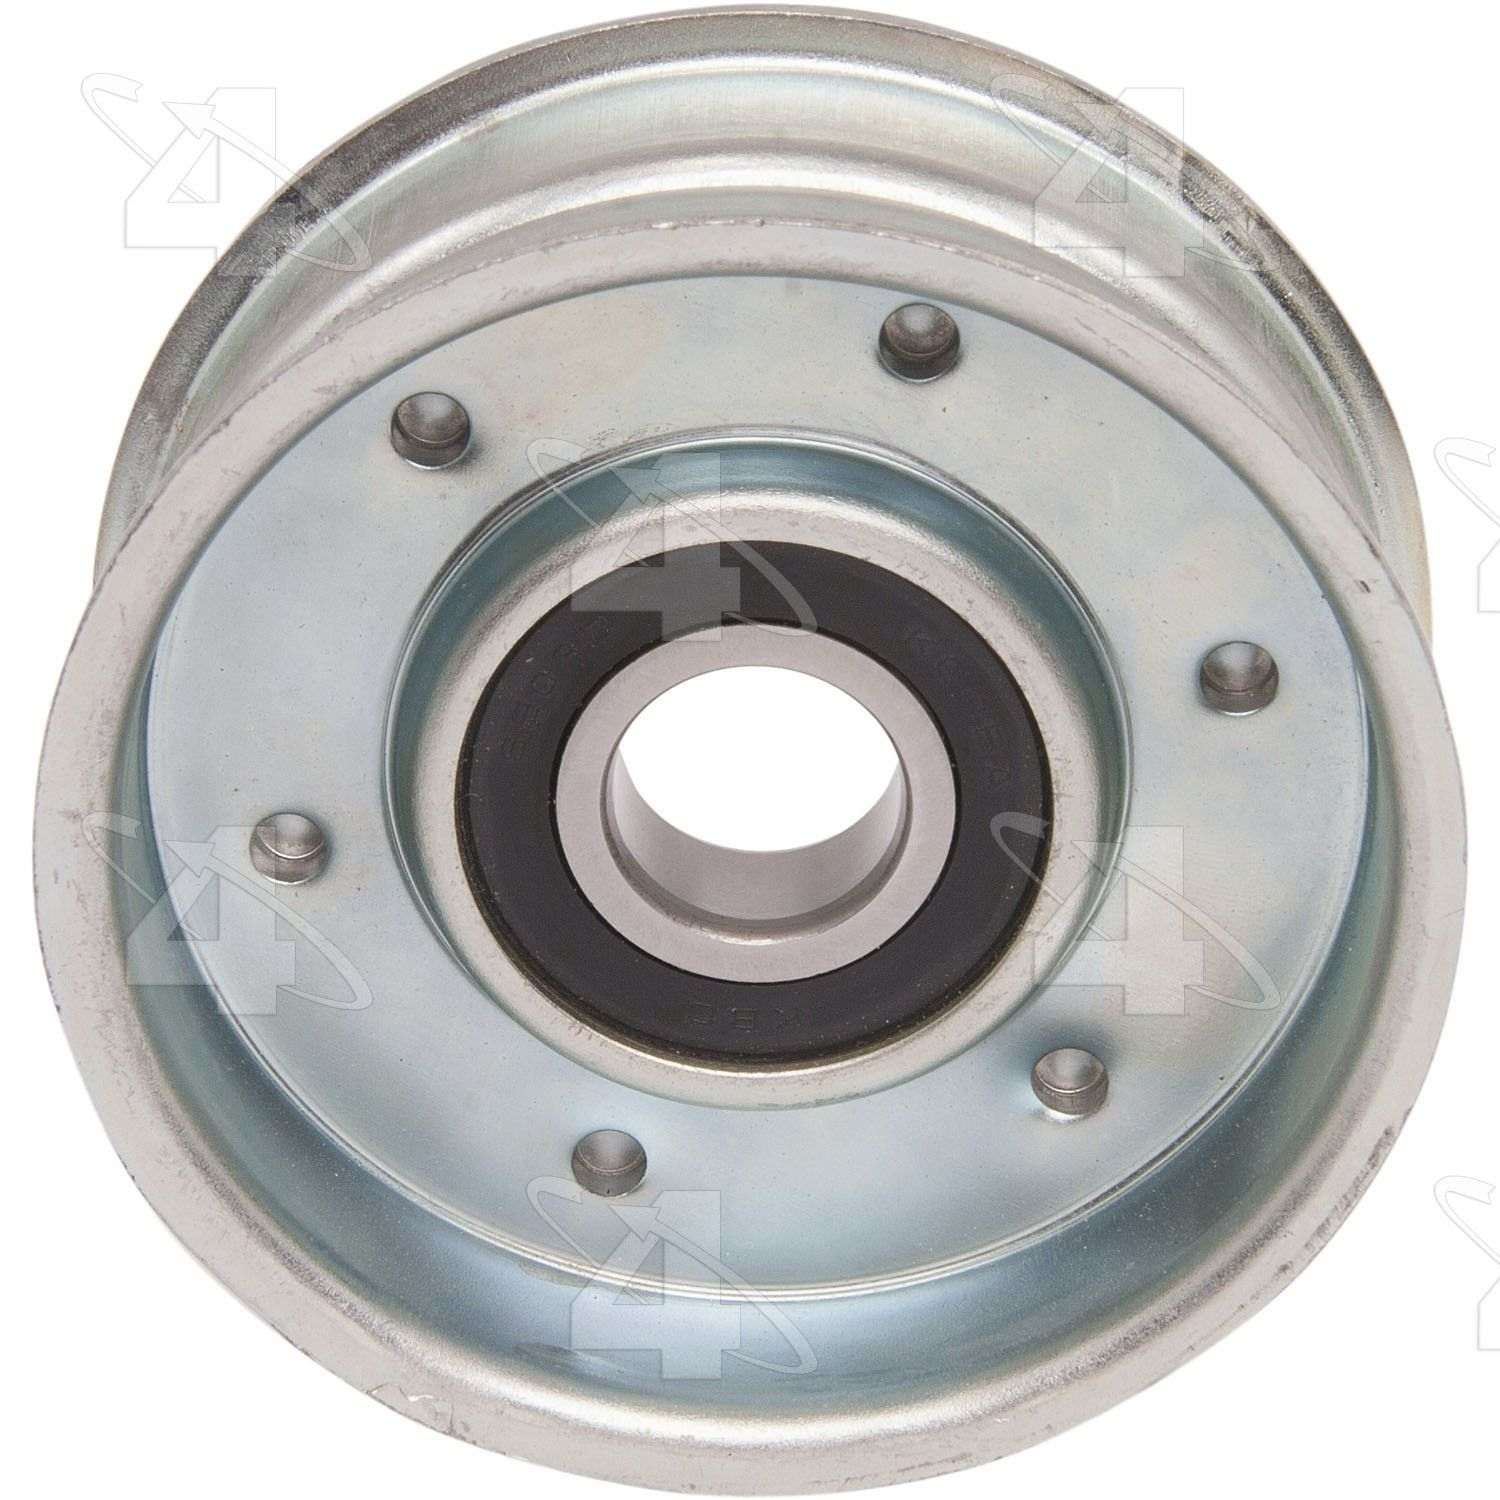 Mazda 626 Drive Belt Idler Pulley Replacement Dayco Dorman Four 2002 Tensioner 1991 Hayden 5959